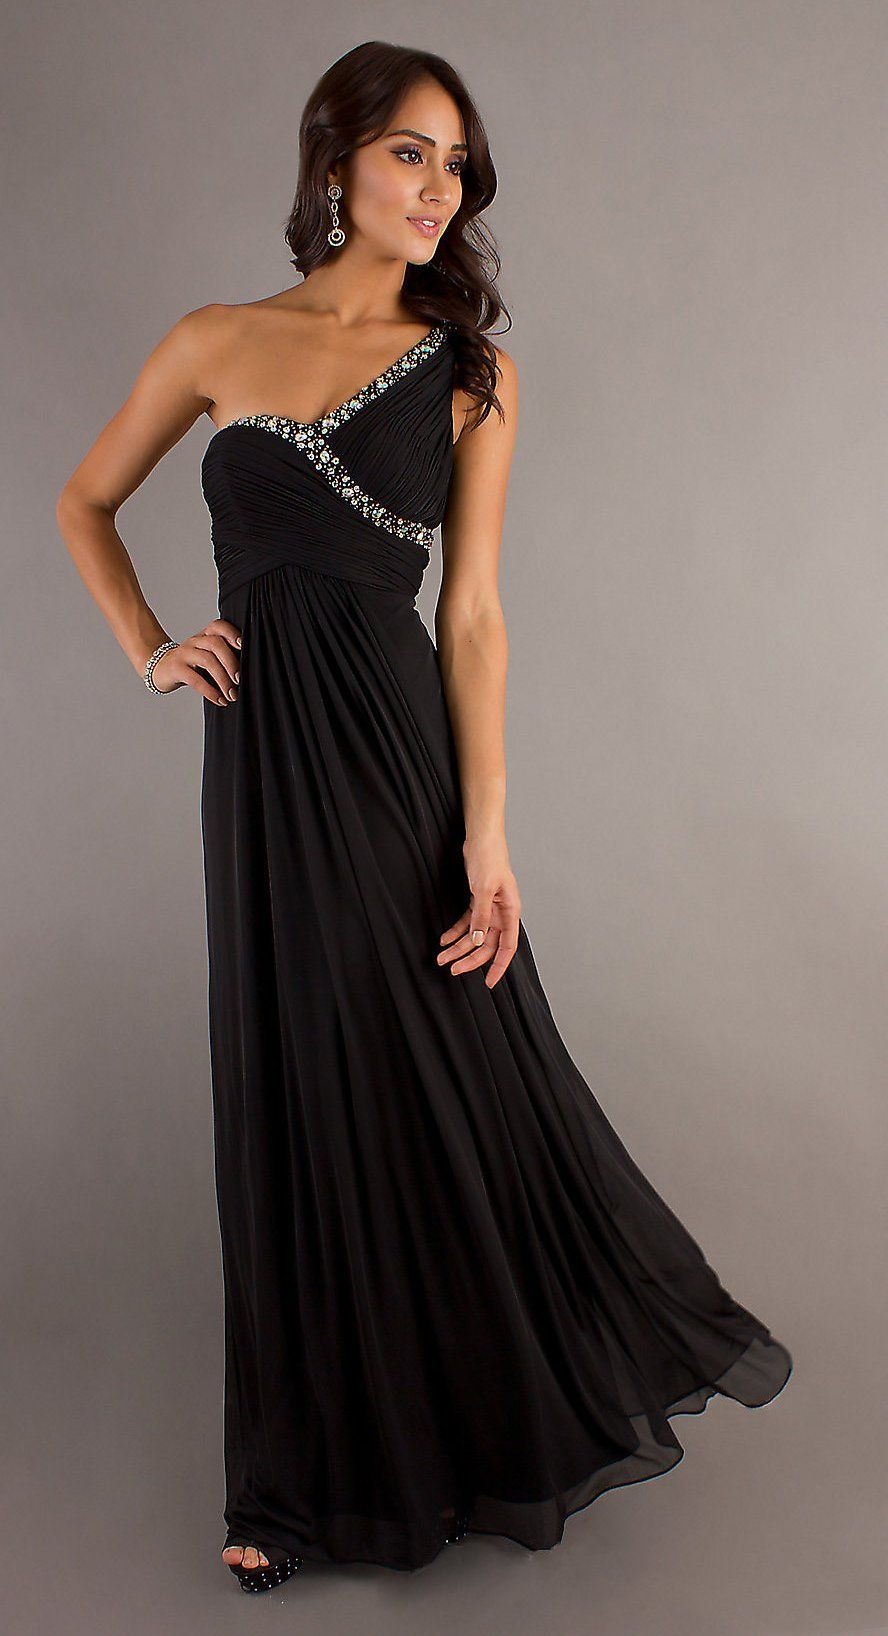 Chiffon flowy long black semi formal dress one strap empire waist